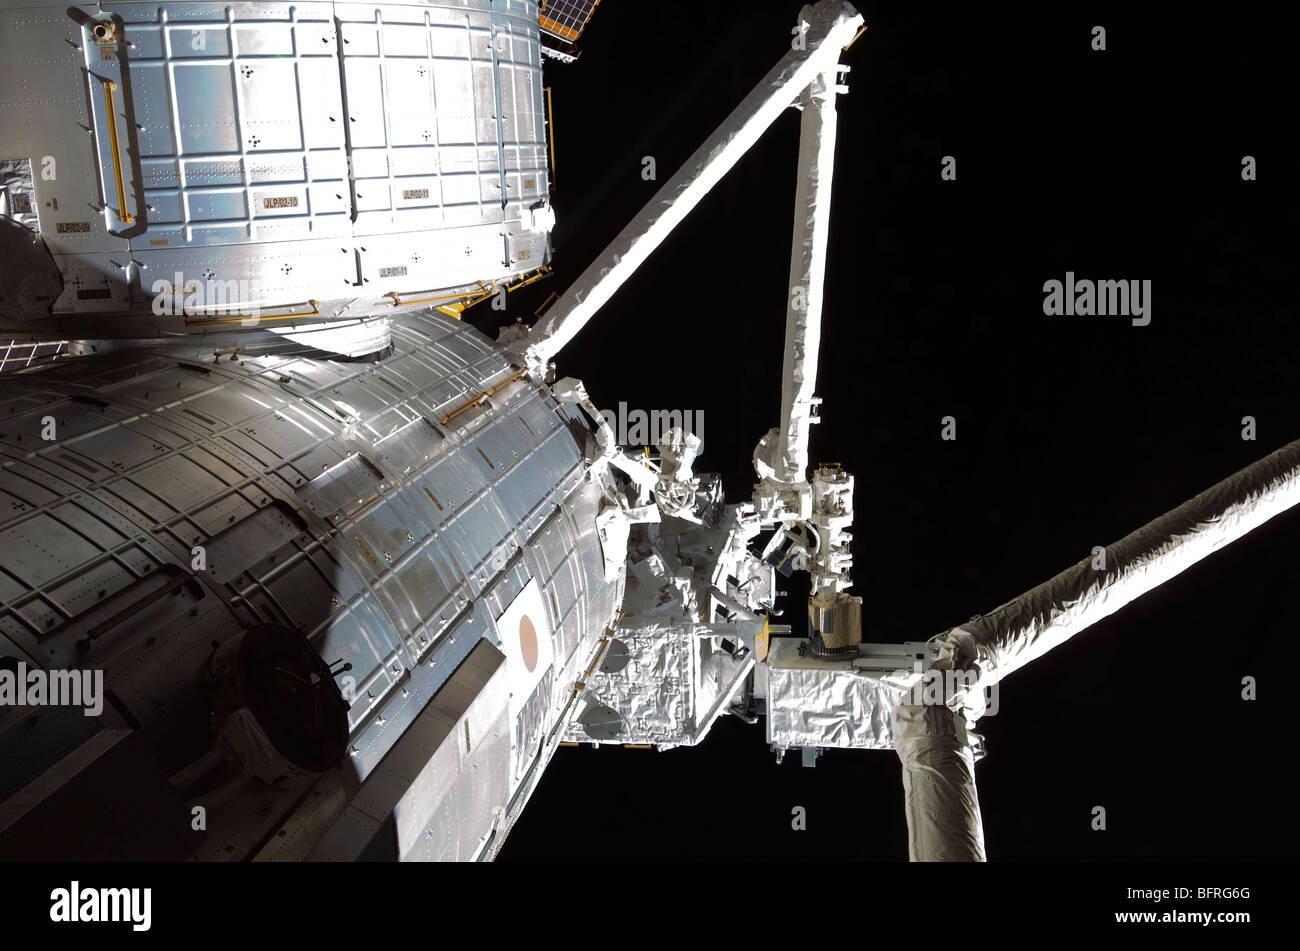 The robotic arm of the Japanese Experiment Module assists in installing components on the Japanese Exposed Facility. - Stock Image